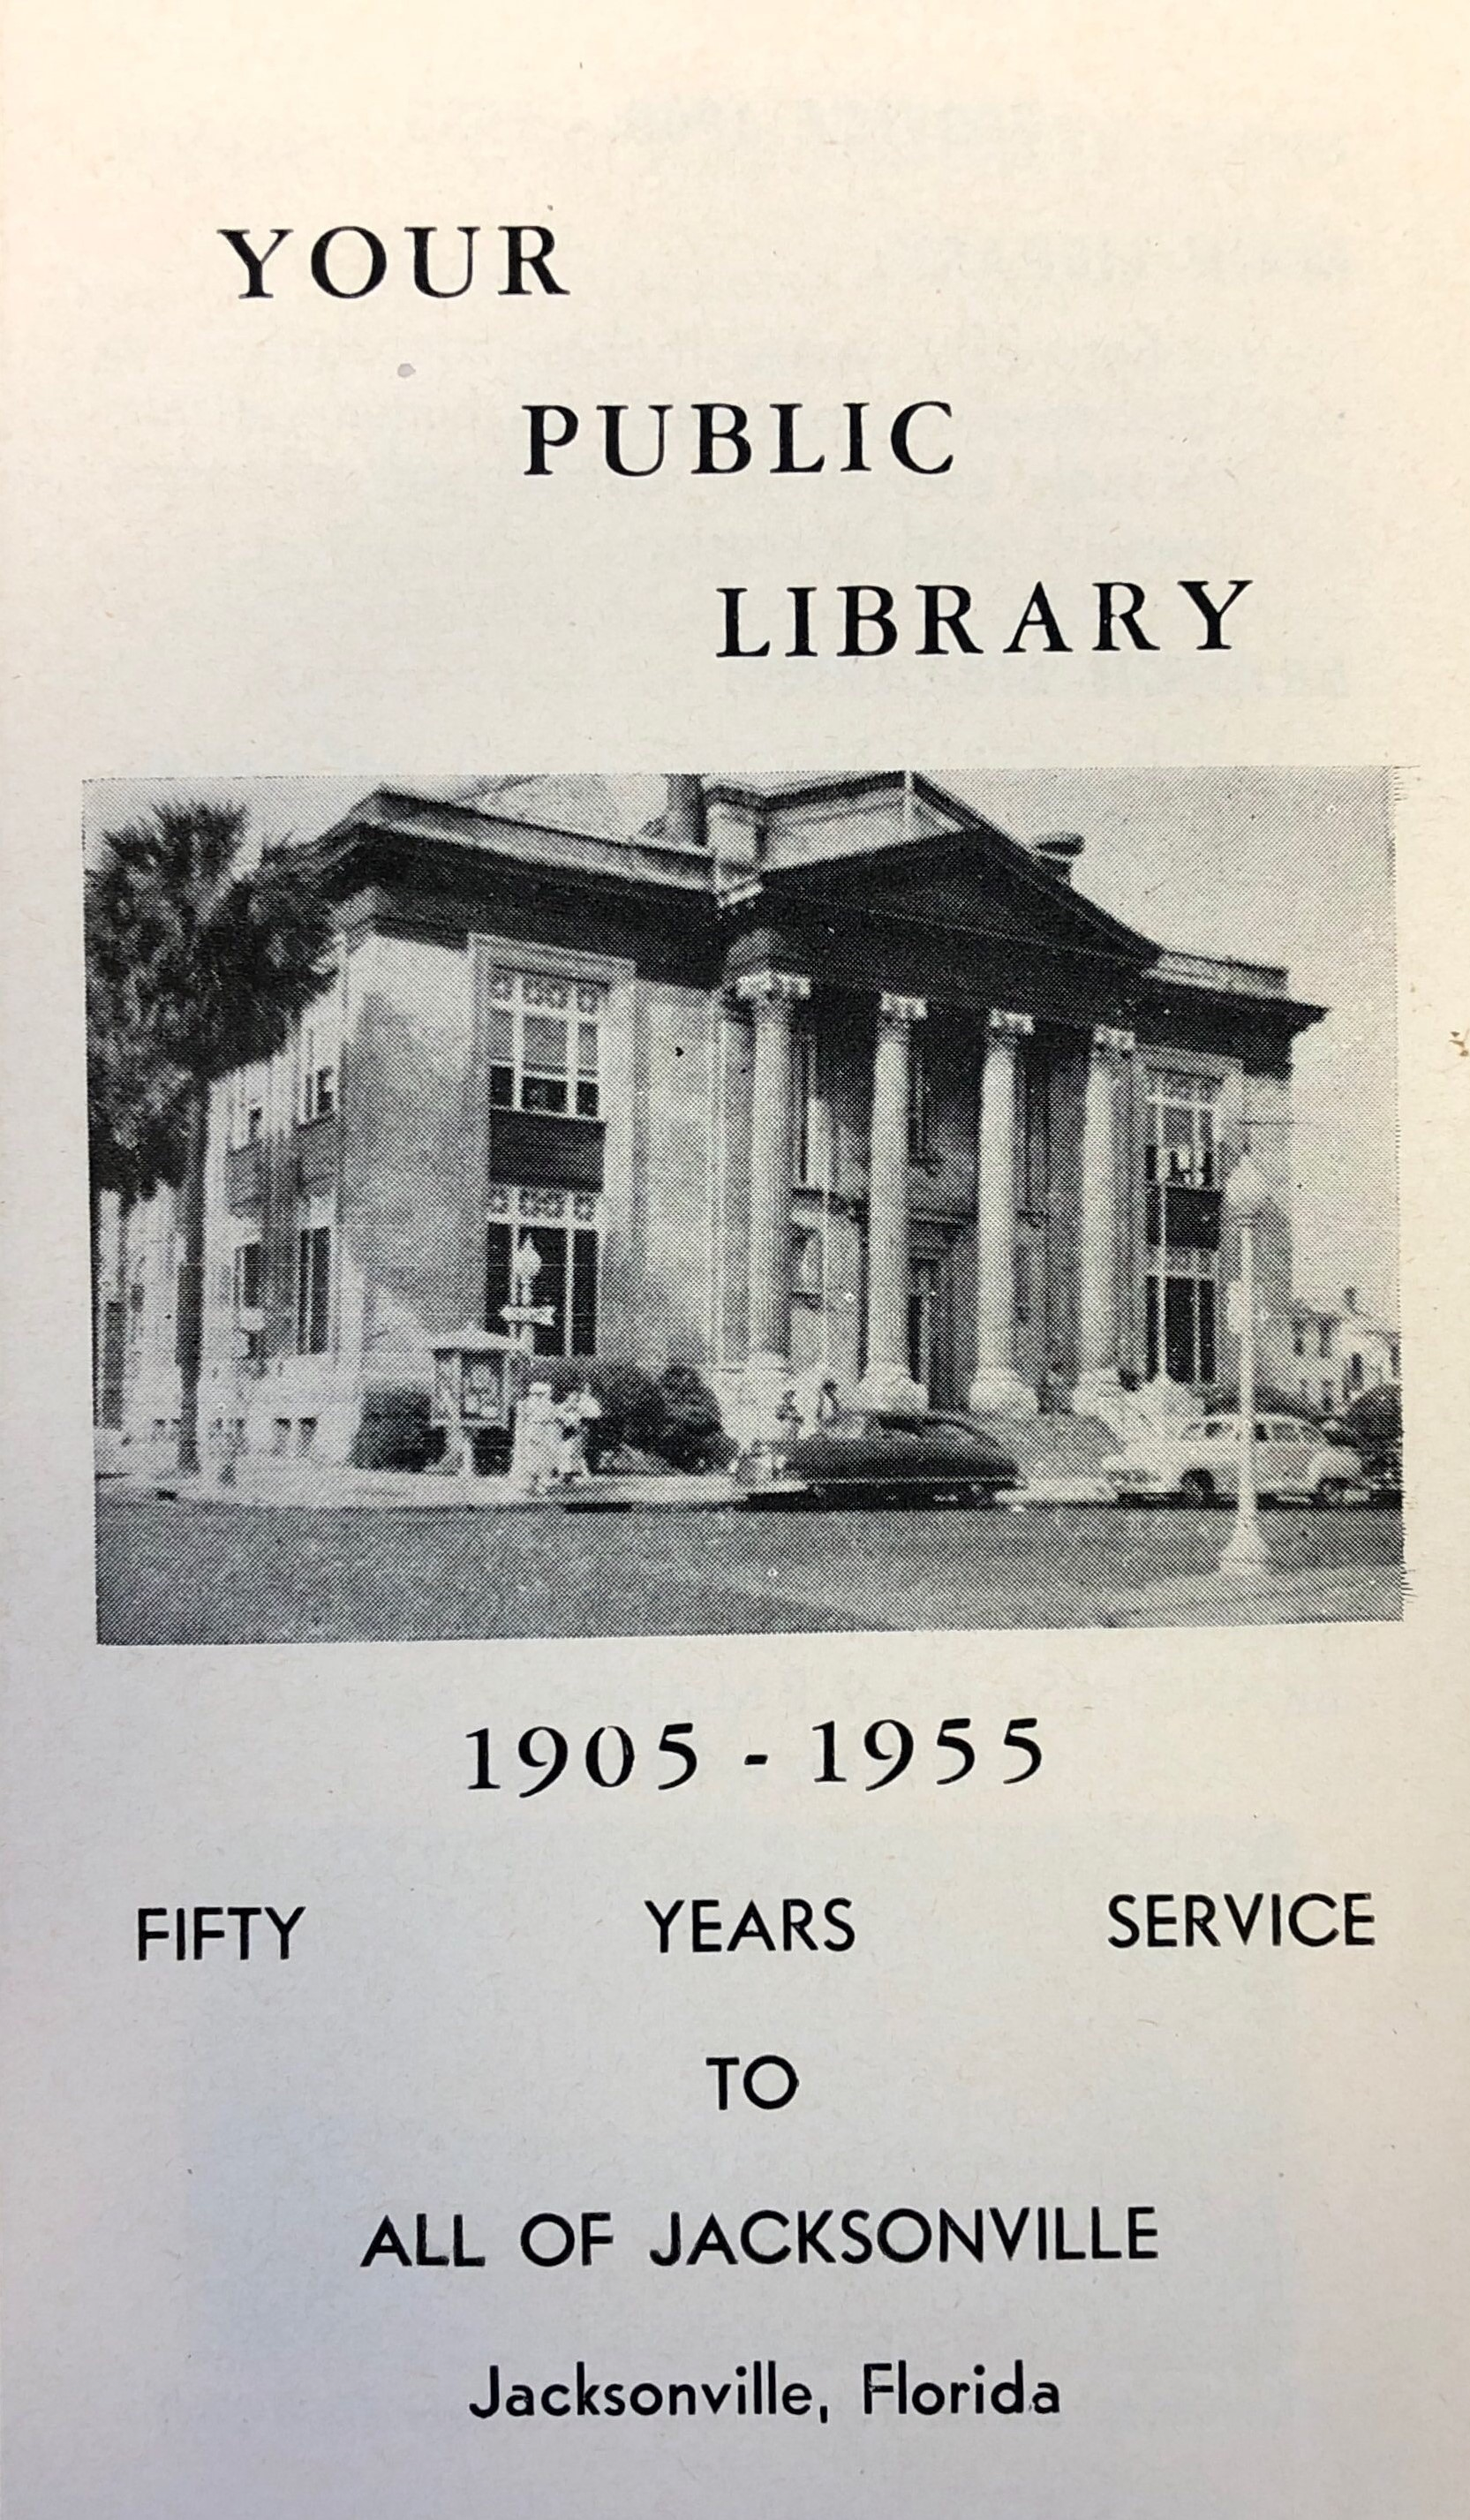 Your Public Library, 50 years of service